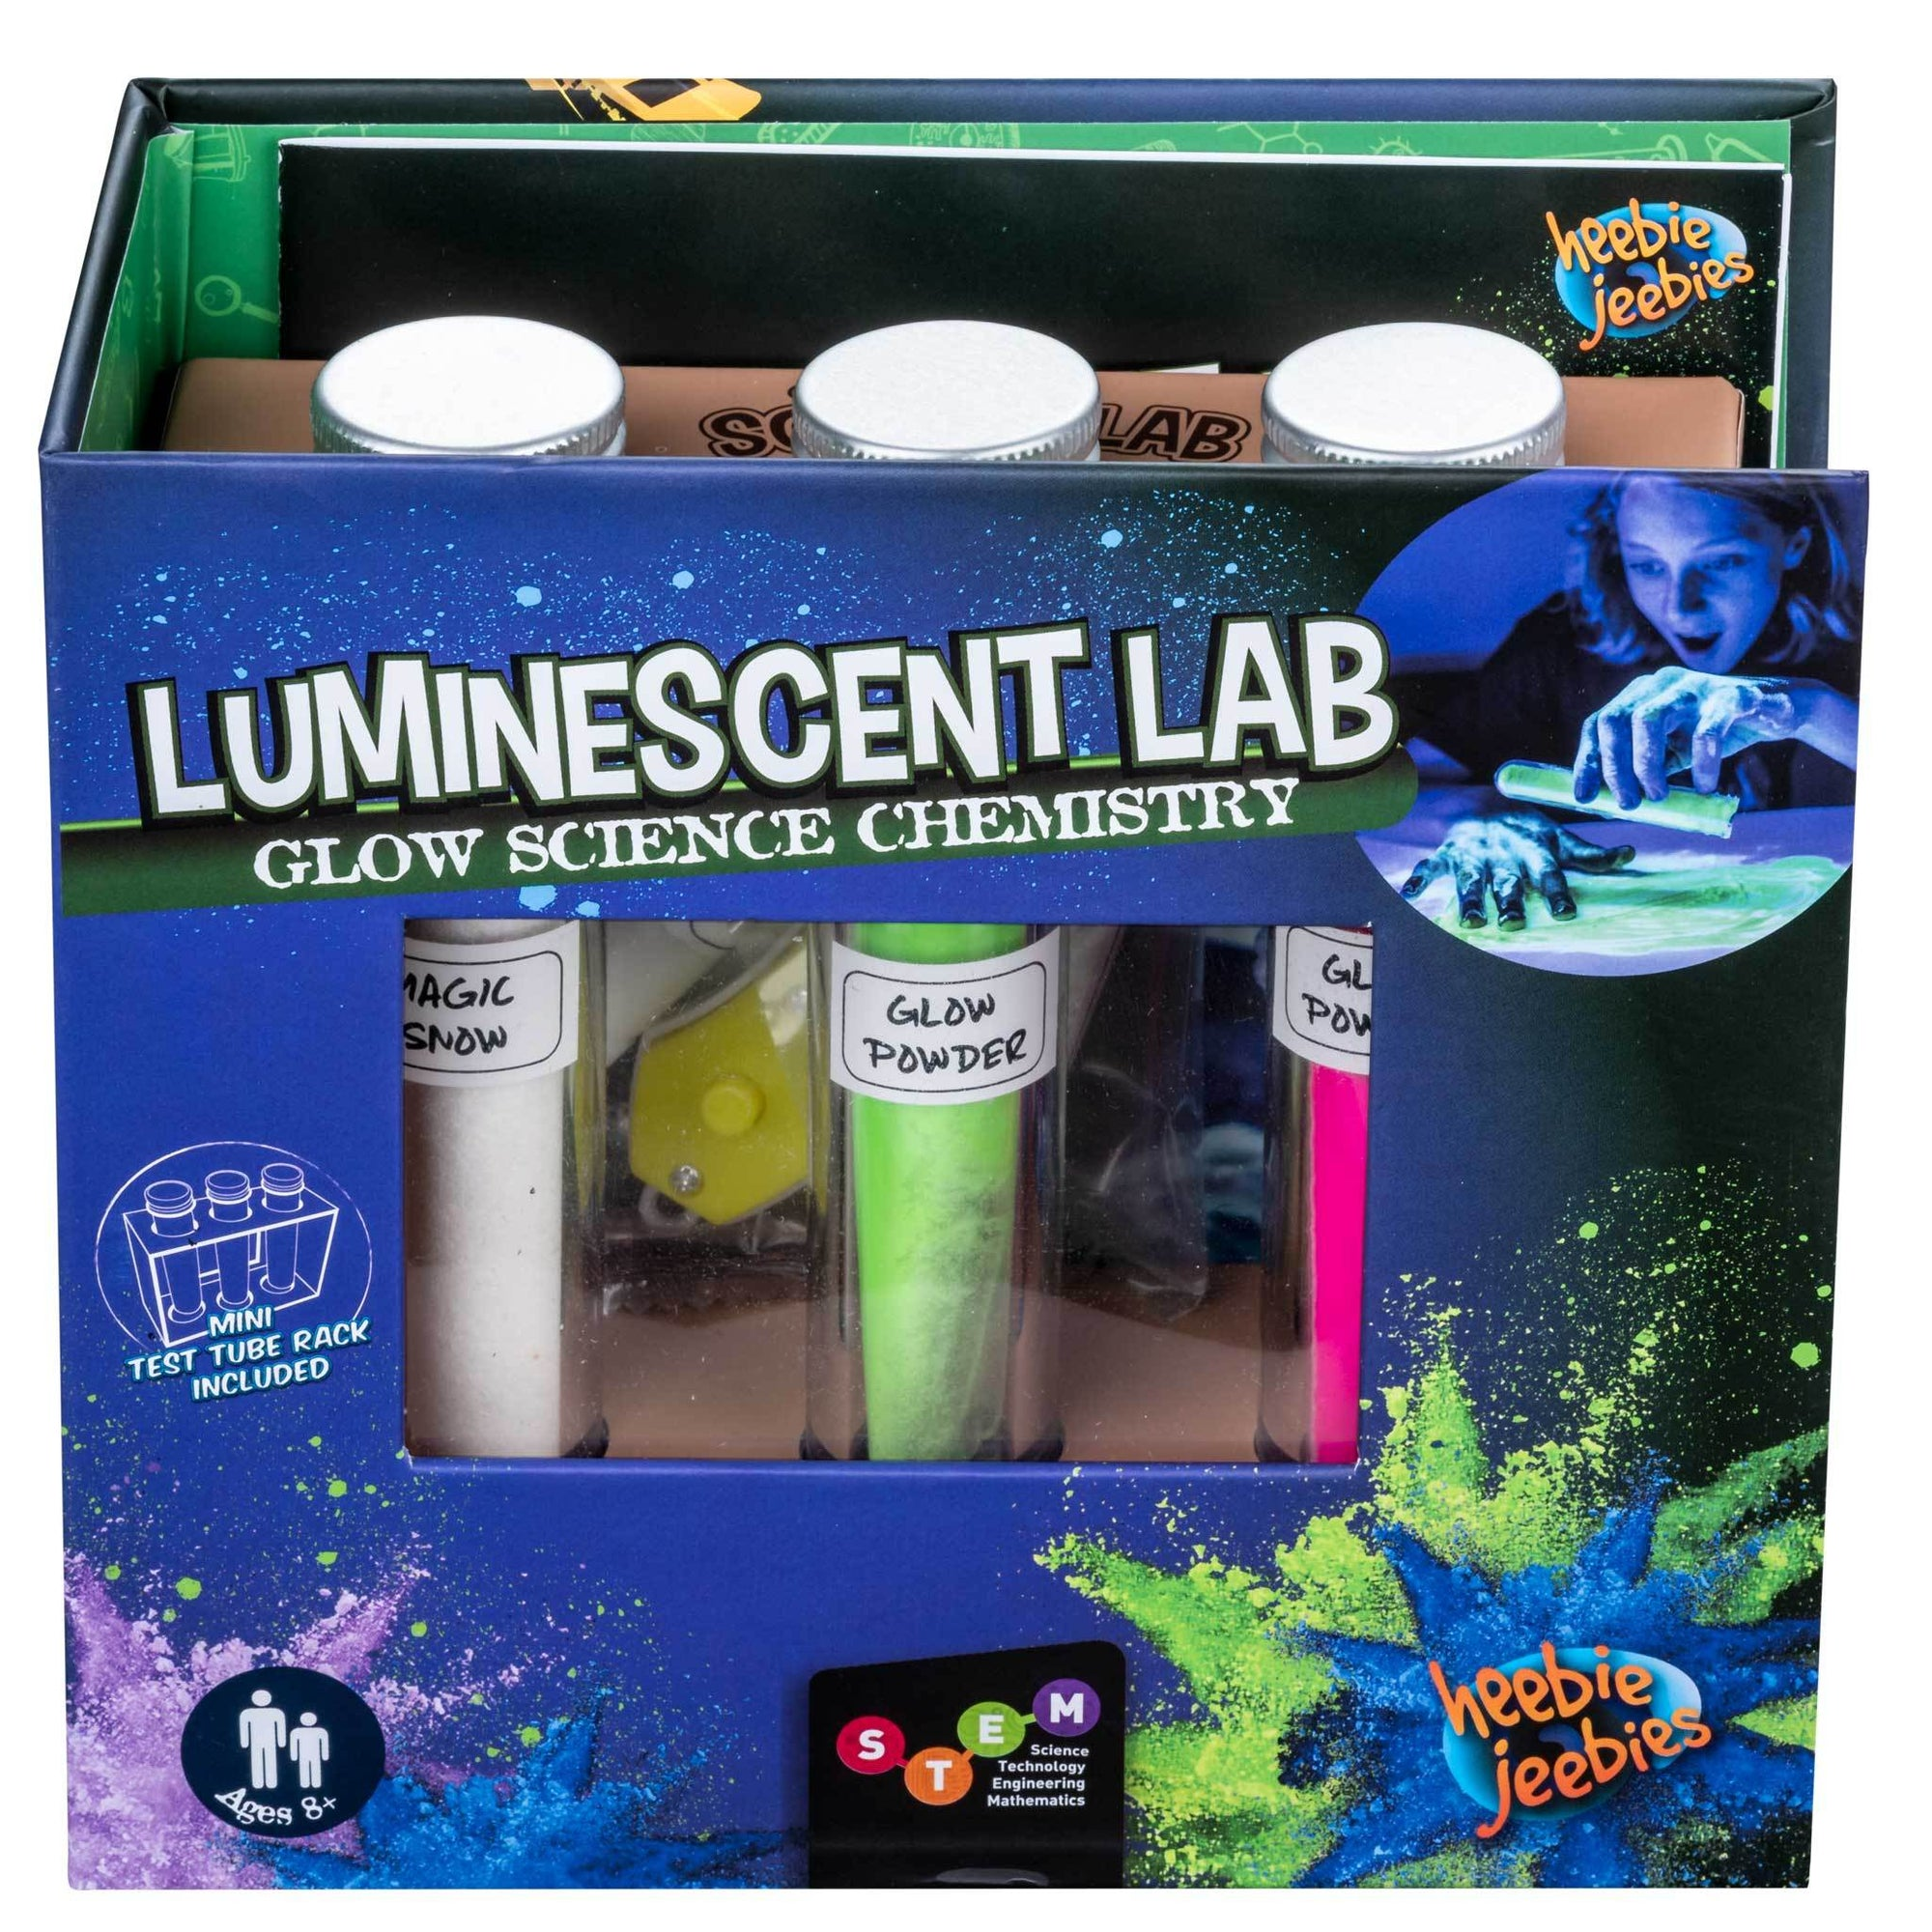 Heebie Jeebies Luminescent Lab Glow Science Chemistry at Little Sprout